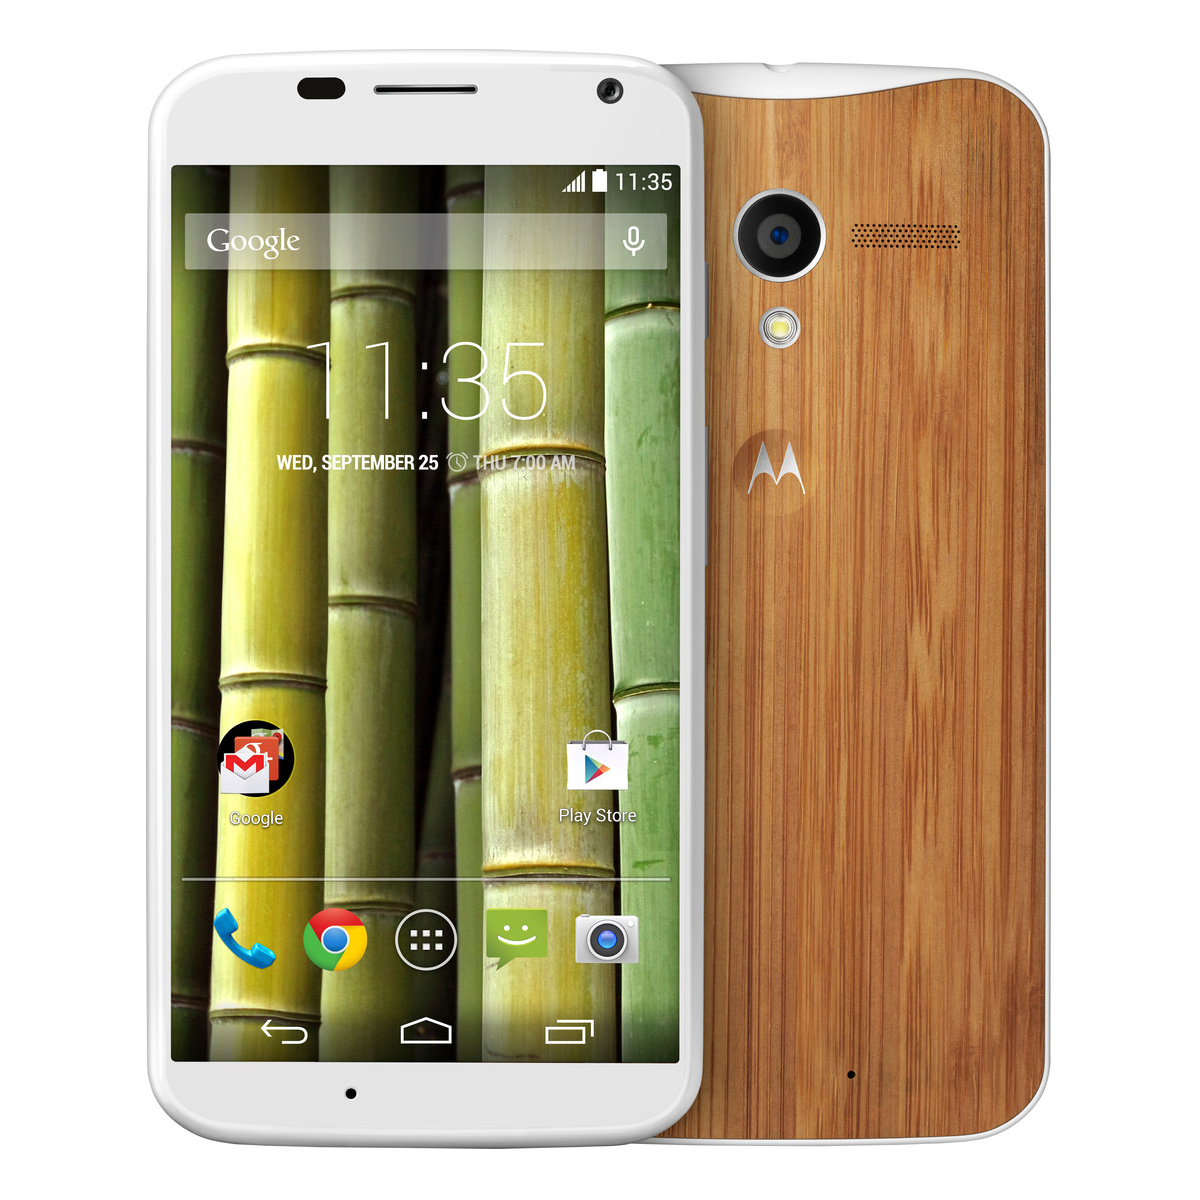 Motorola Moto X 16GB for MetroPCS Smartphone in White